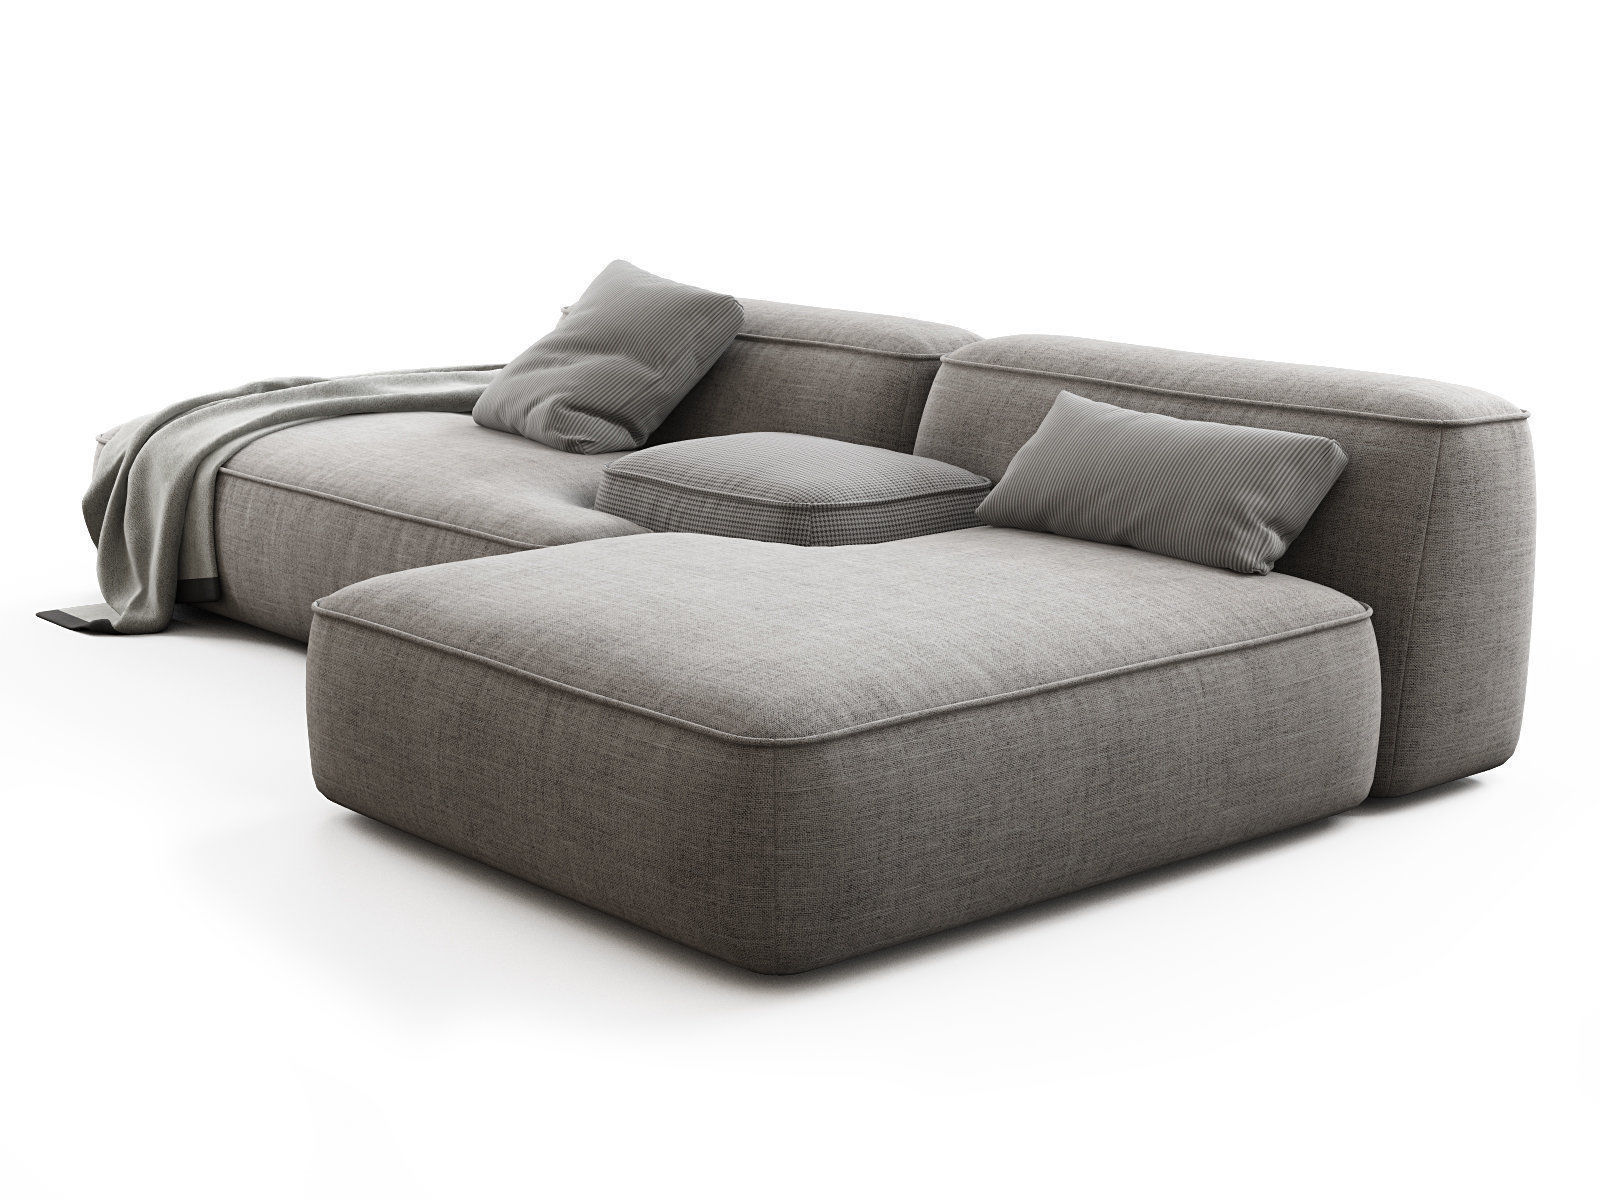 cloud 2 sectional sofa meval the test road it today love gotta have